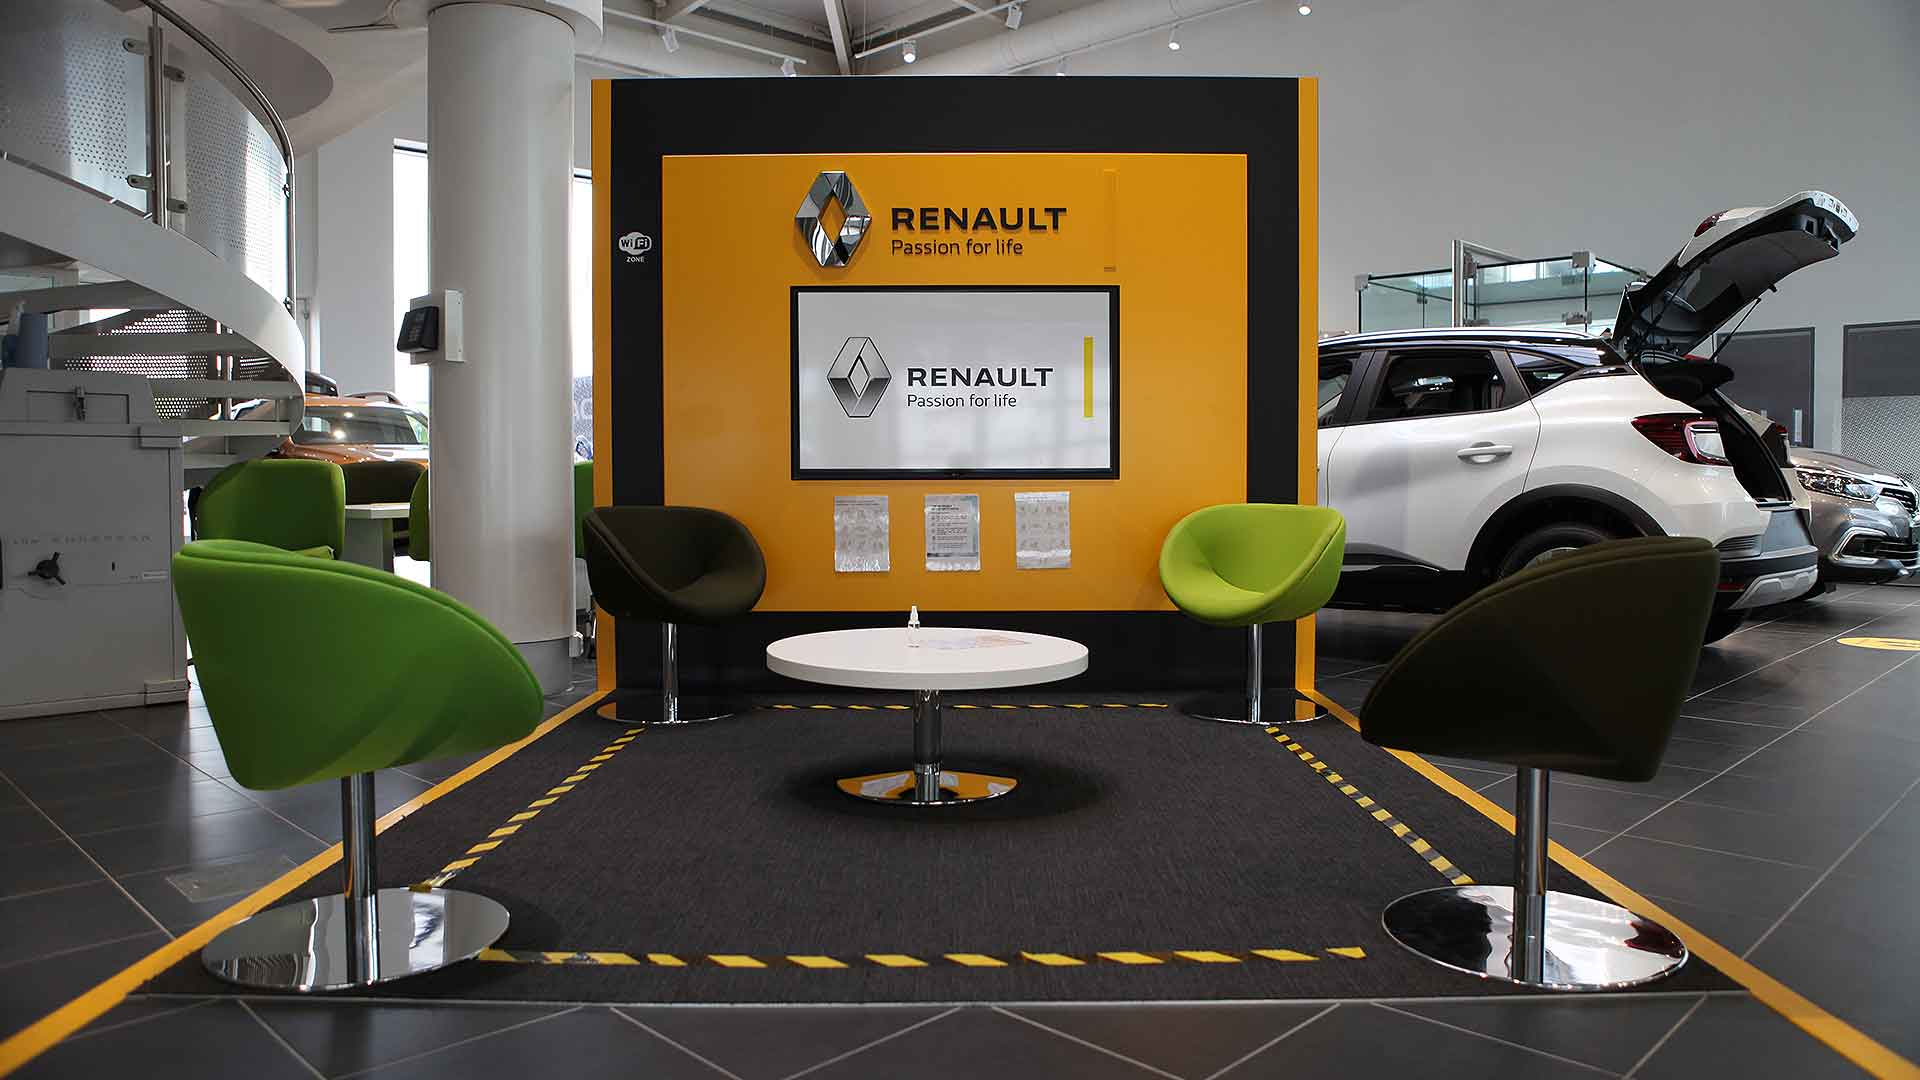 A Covid-friendly Renault new car dealer